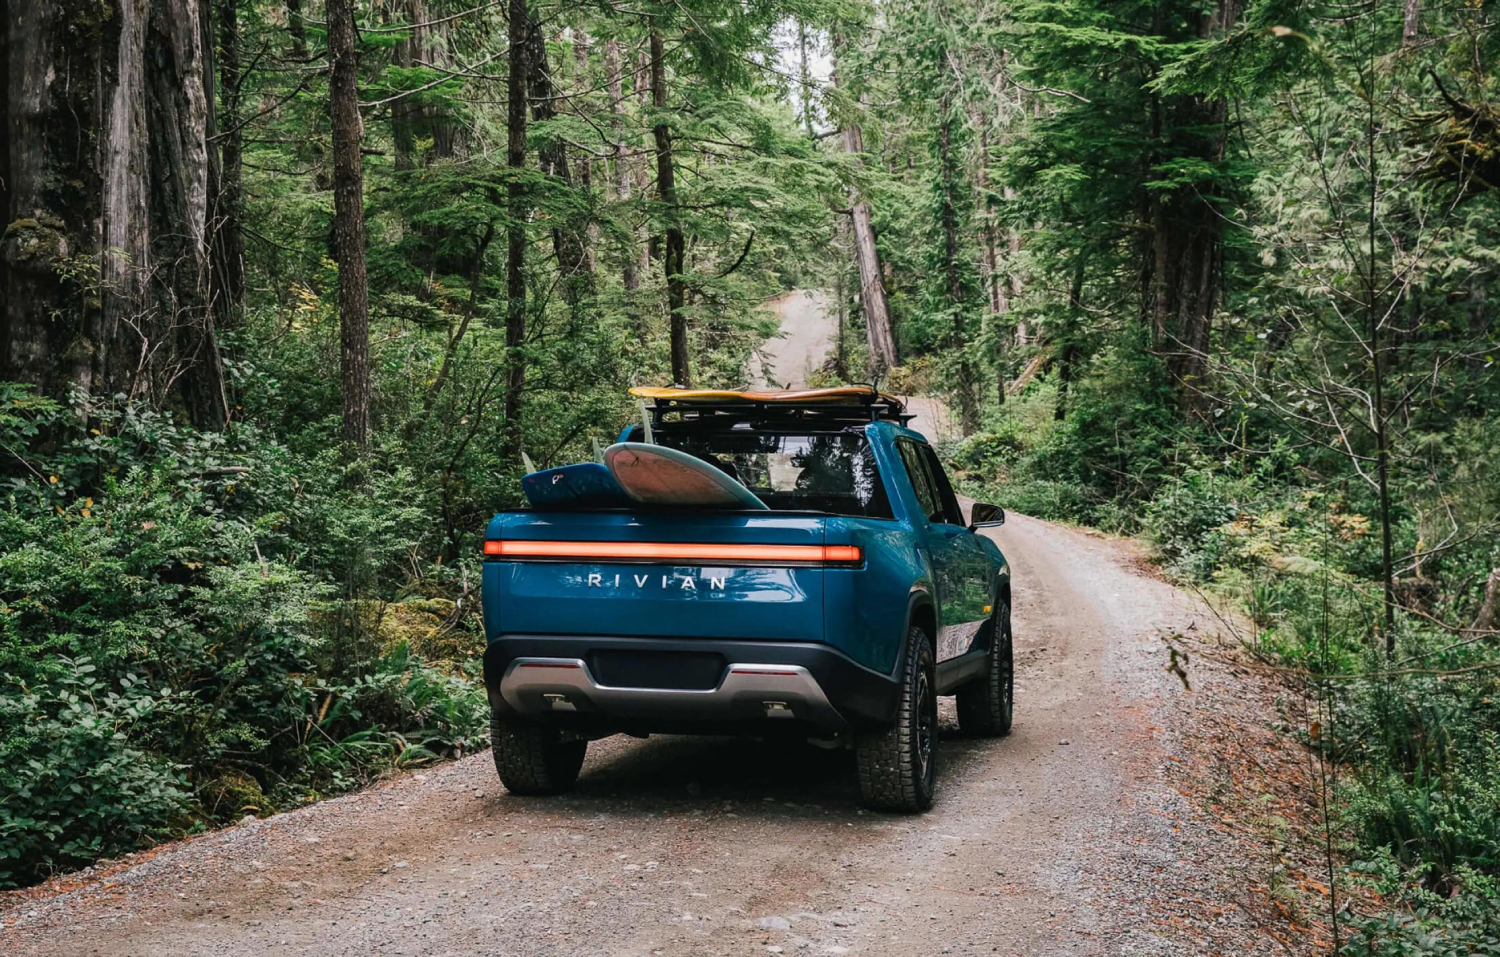 The 2022 Rivian R1T is one of MotorTrends most popular new cars